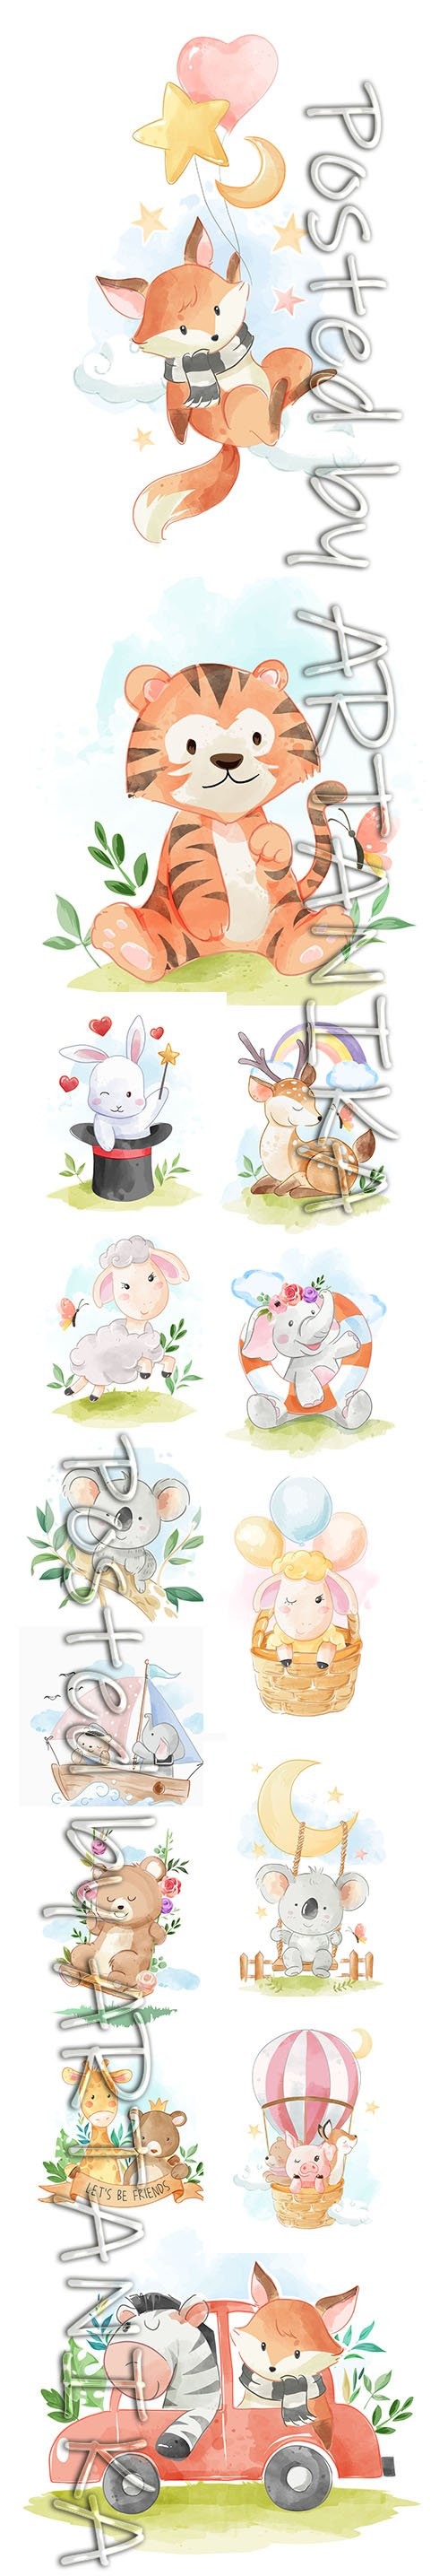 SET of HAND DRAW WATERCOLOR ADORABLE ANIMALS ILLUSTRATIONS VOL 8